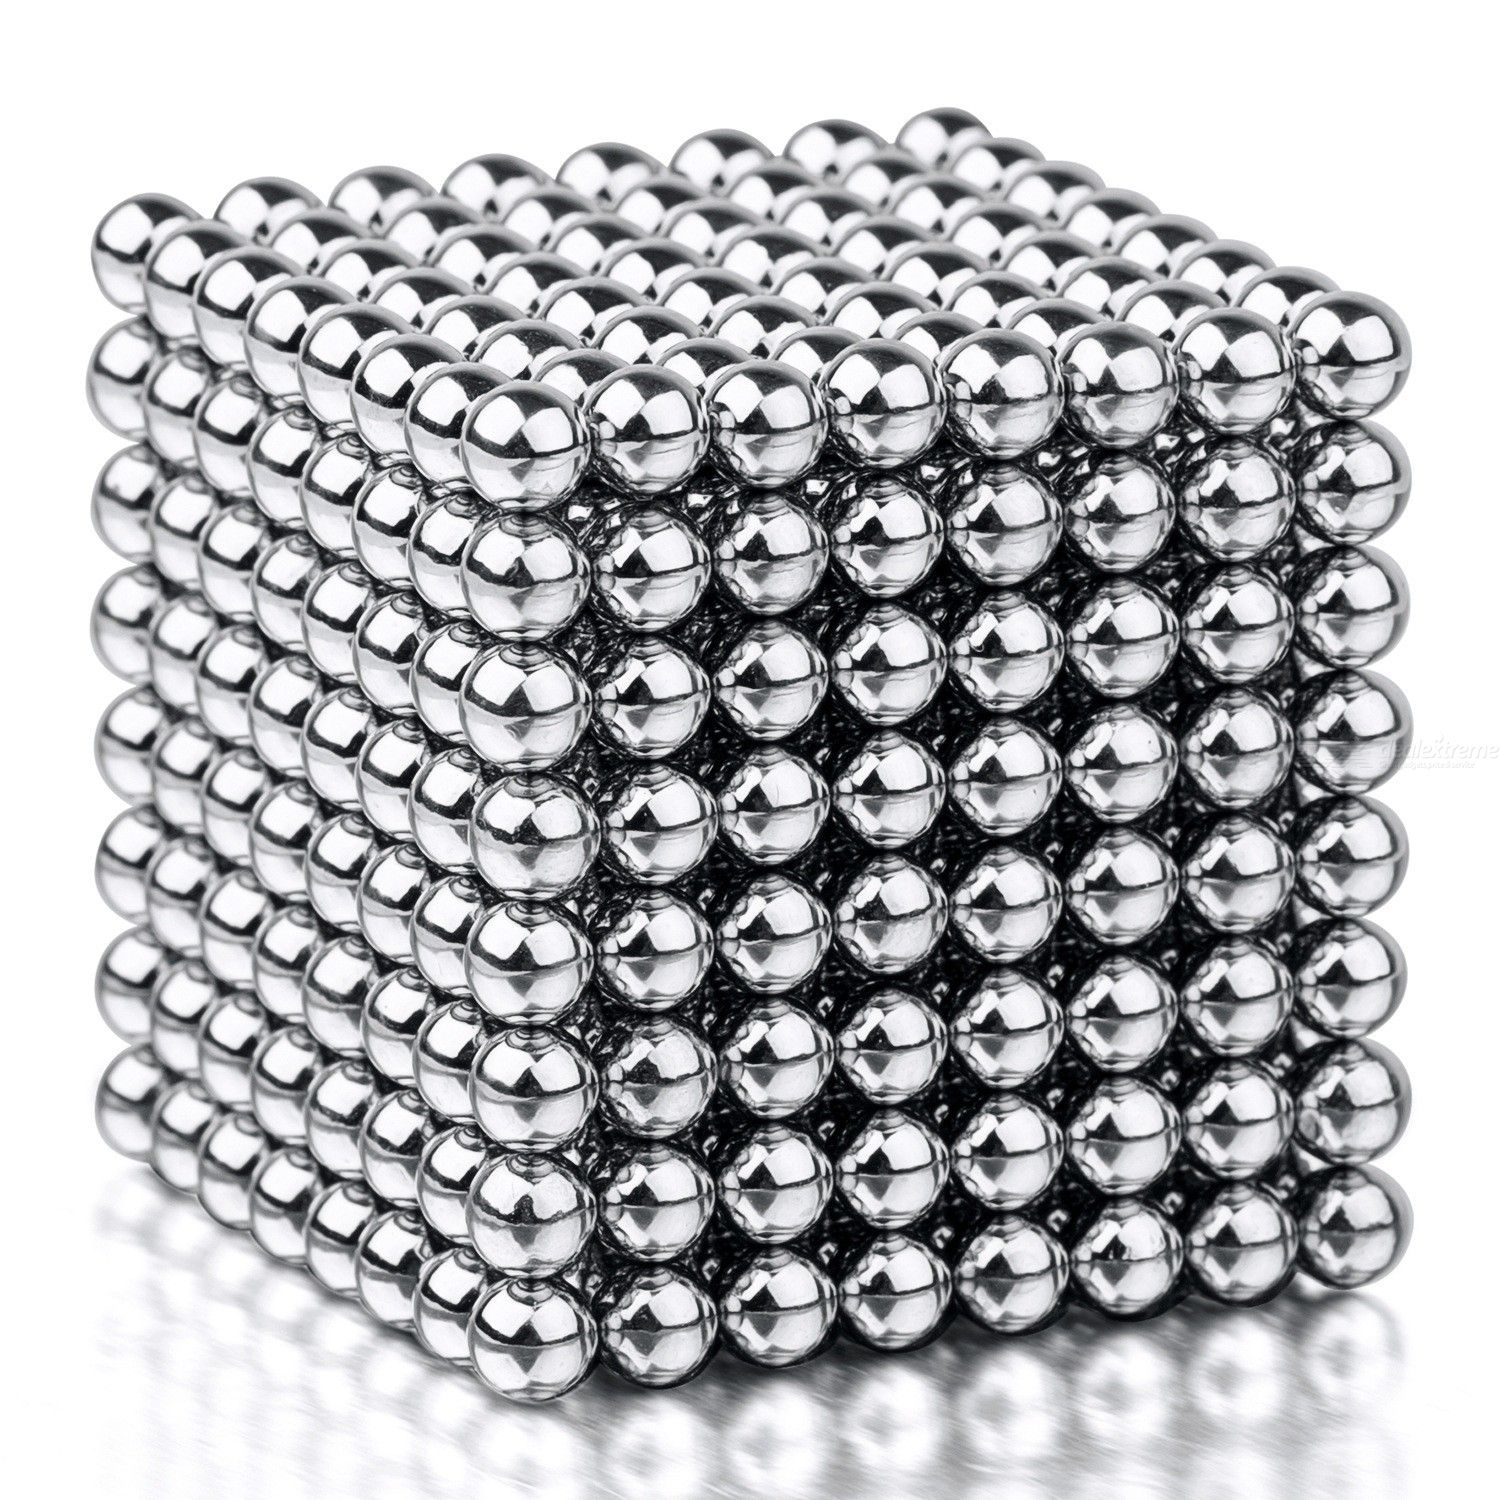 512PCS Silver Magnetic Ball Building Block Creative Magnet Toy Puzzle, 5mm Office Decoration Balls